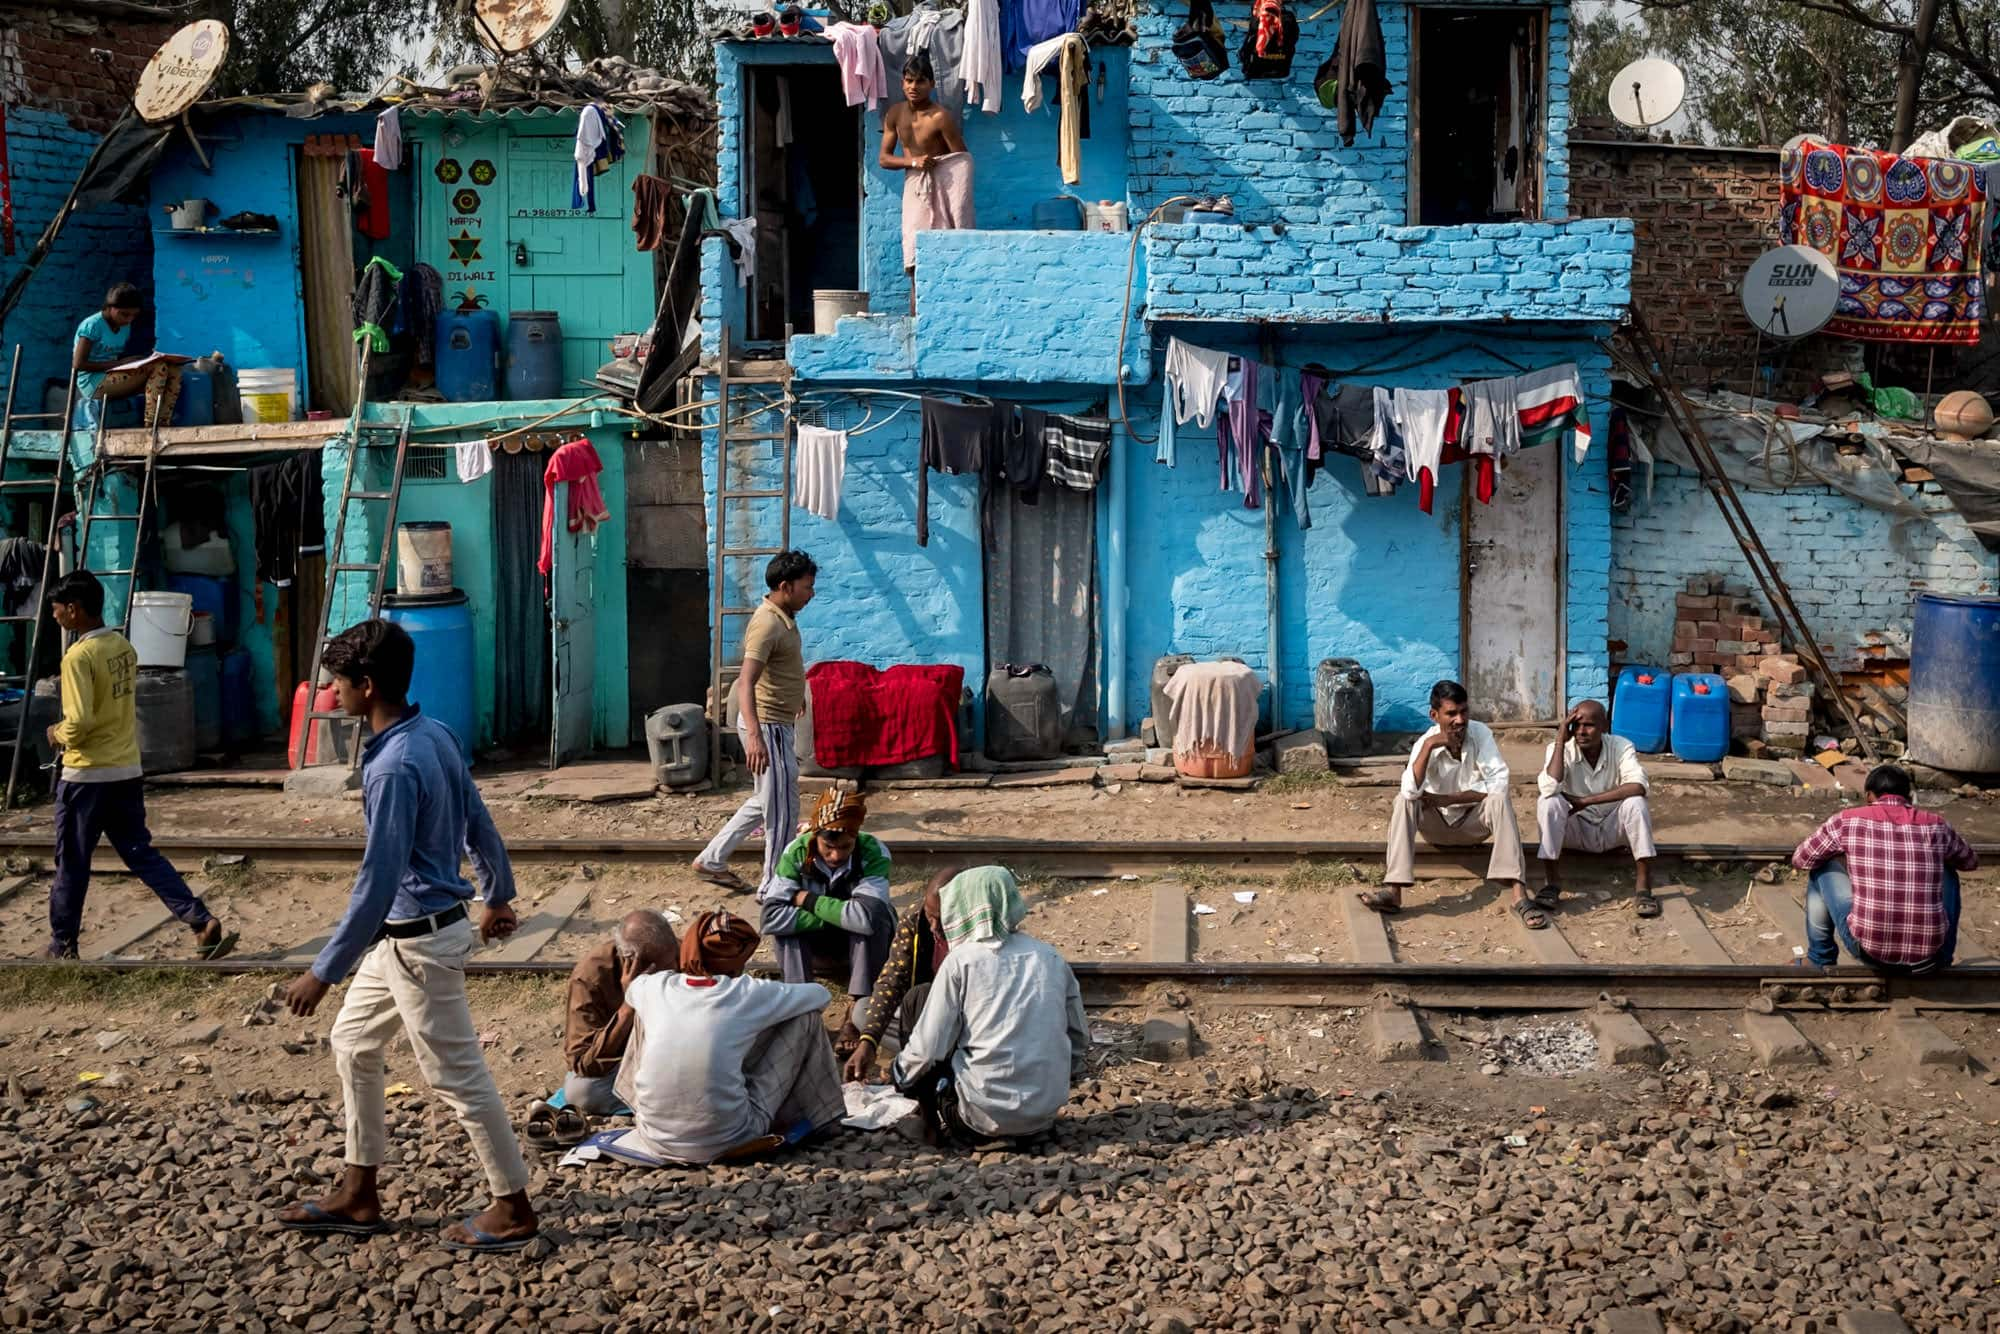 India street photography stories by the train tracks with colourful buildings